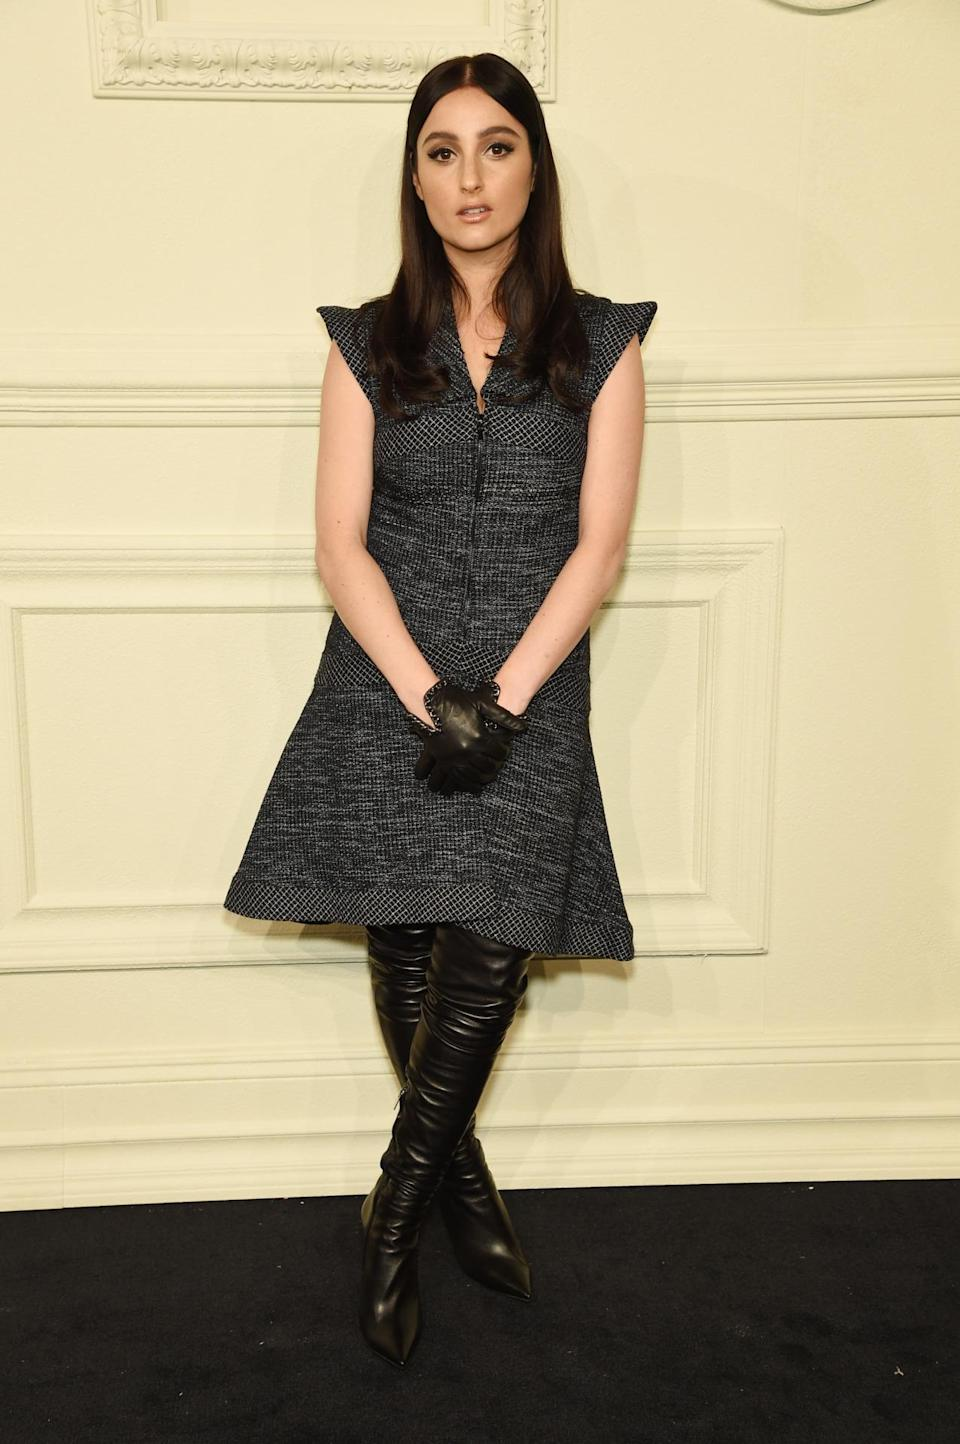 """<p>The """"Beggin for Thread"""" singer looks runway ready in a Chanel dress with shoulder accent and thigh-high leather boots.</p>"""